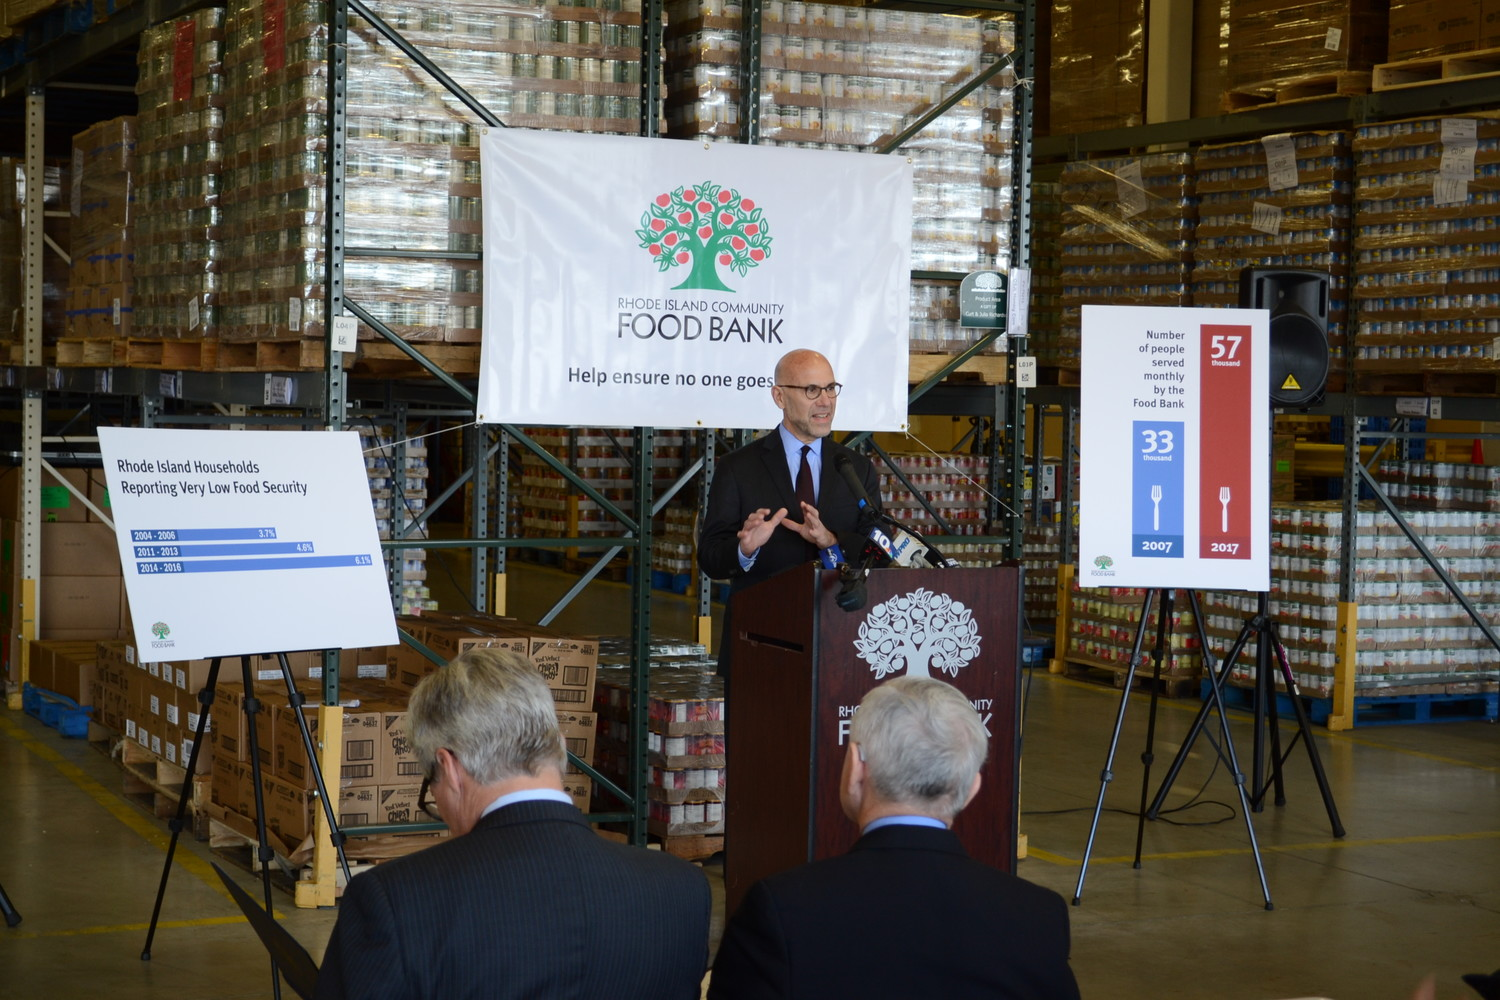 ASSESSING THE SITUATION: Rhode Island Community Food Bank CEO Andrew Schiff speaks at the unveiling of the annual status report on hunger in Rhode Island. Senators Jack Reed and Sheldon Whitehouse are seen in the foreground.